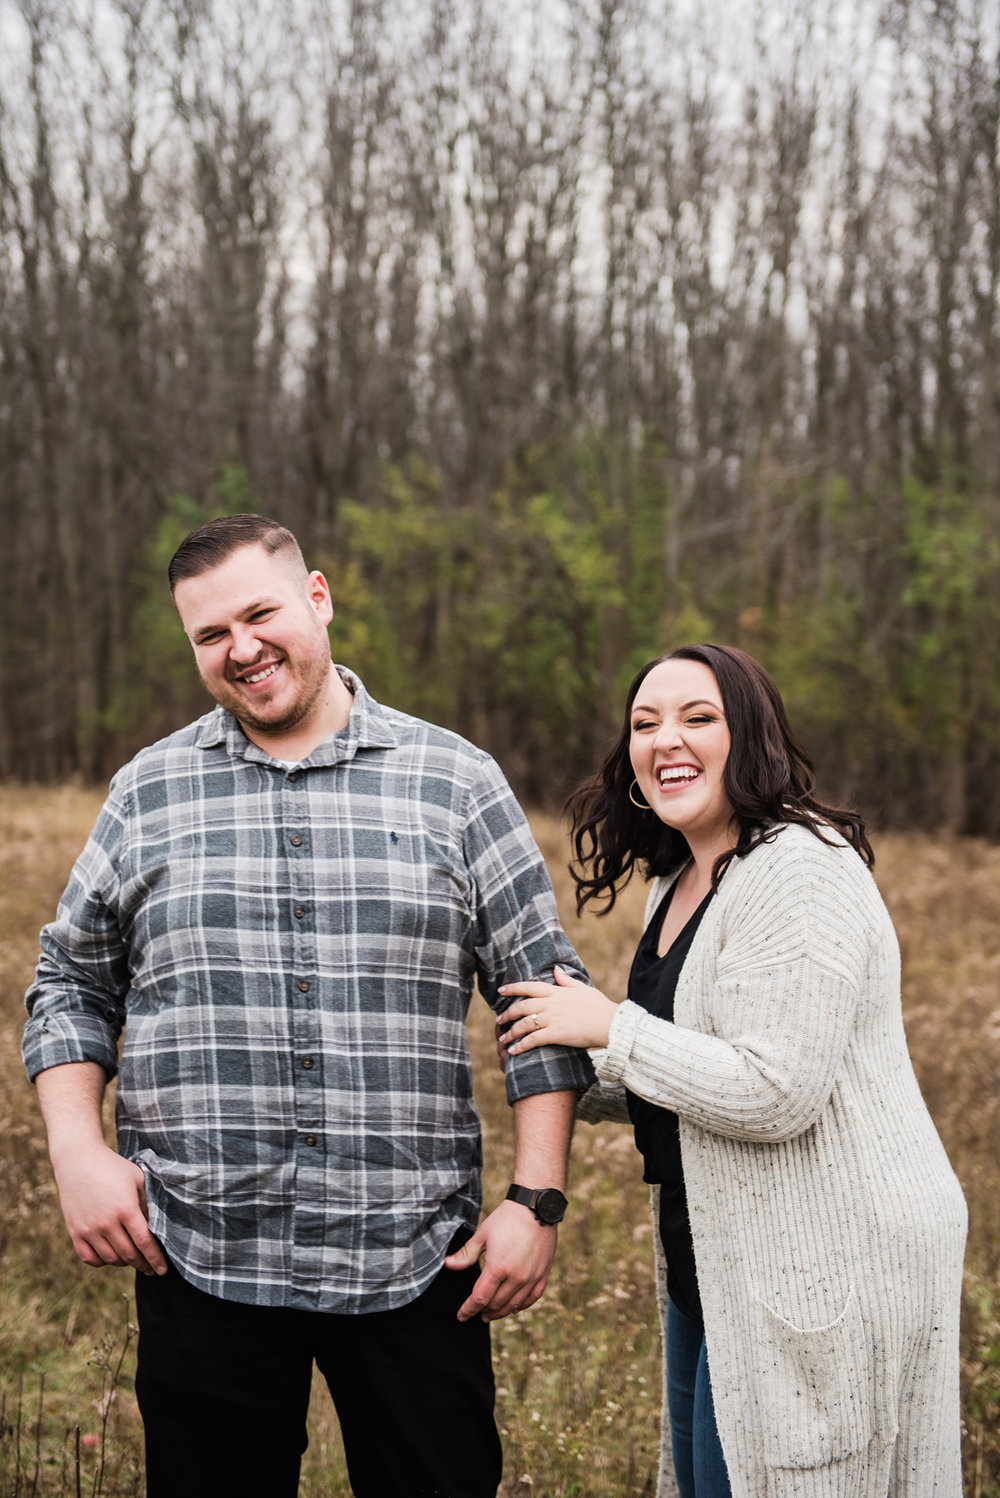 Tinker_Nature_Park_Rochester_Engagement_Session_JILL_STUDIO_Rochester_NY_Photographer_DSC_0455.jpg